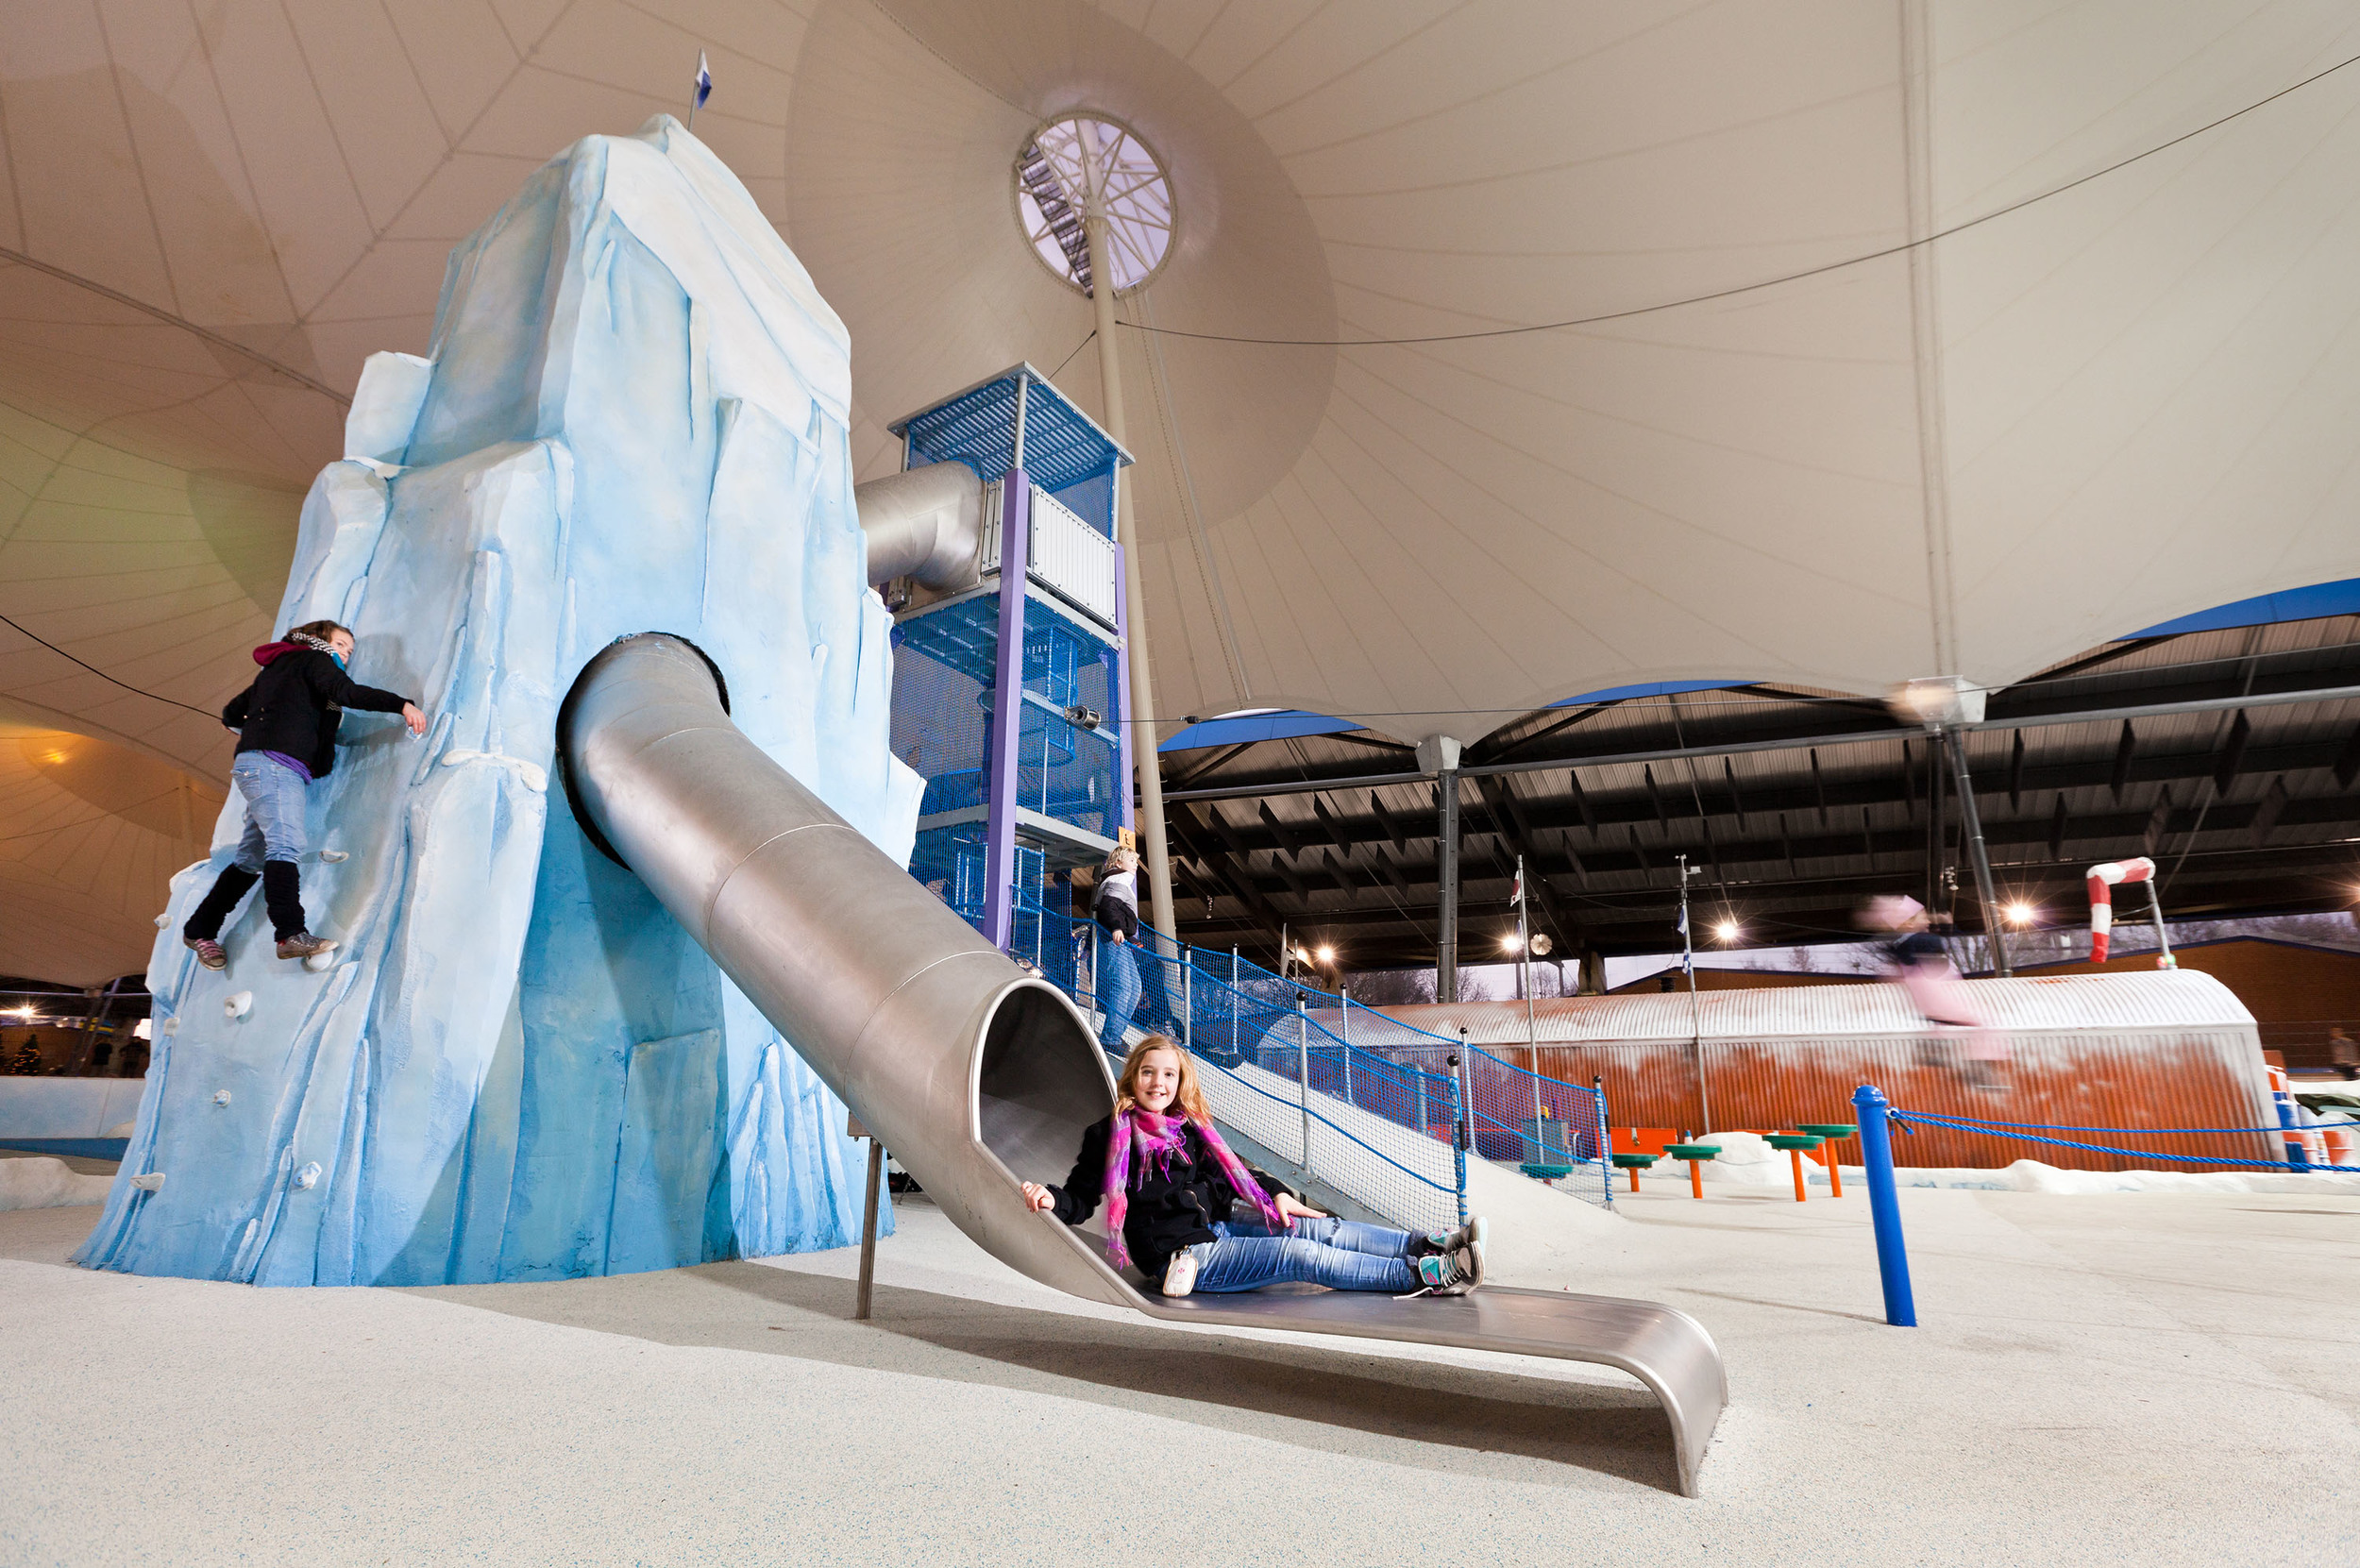 DE SPEELPOOL <strong>| A unique interactive fun zone inside a skating rink in De Scheg, the Netherlands</strong>